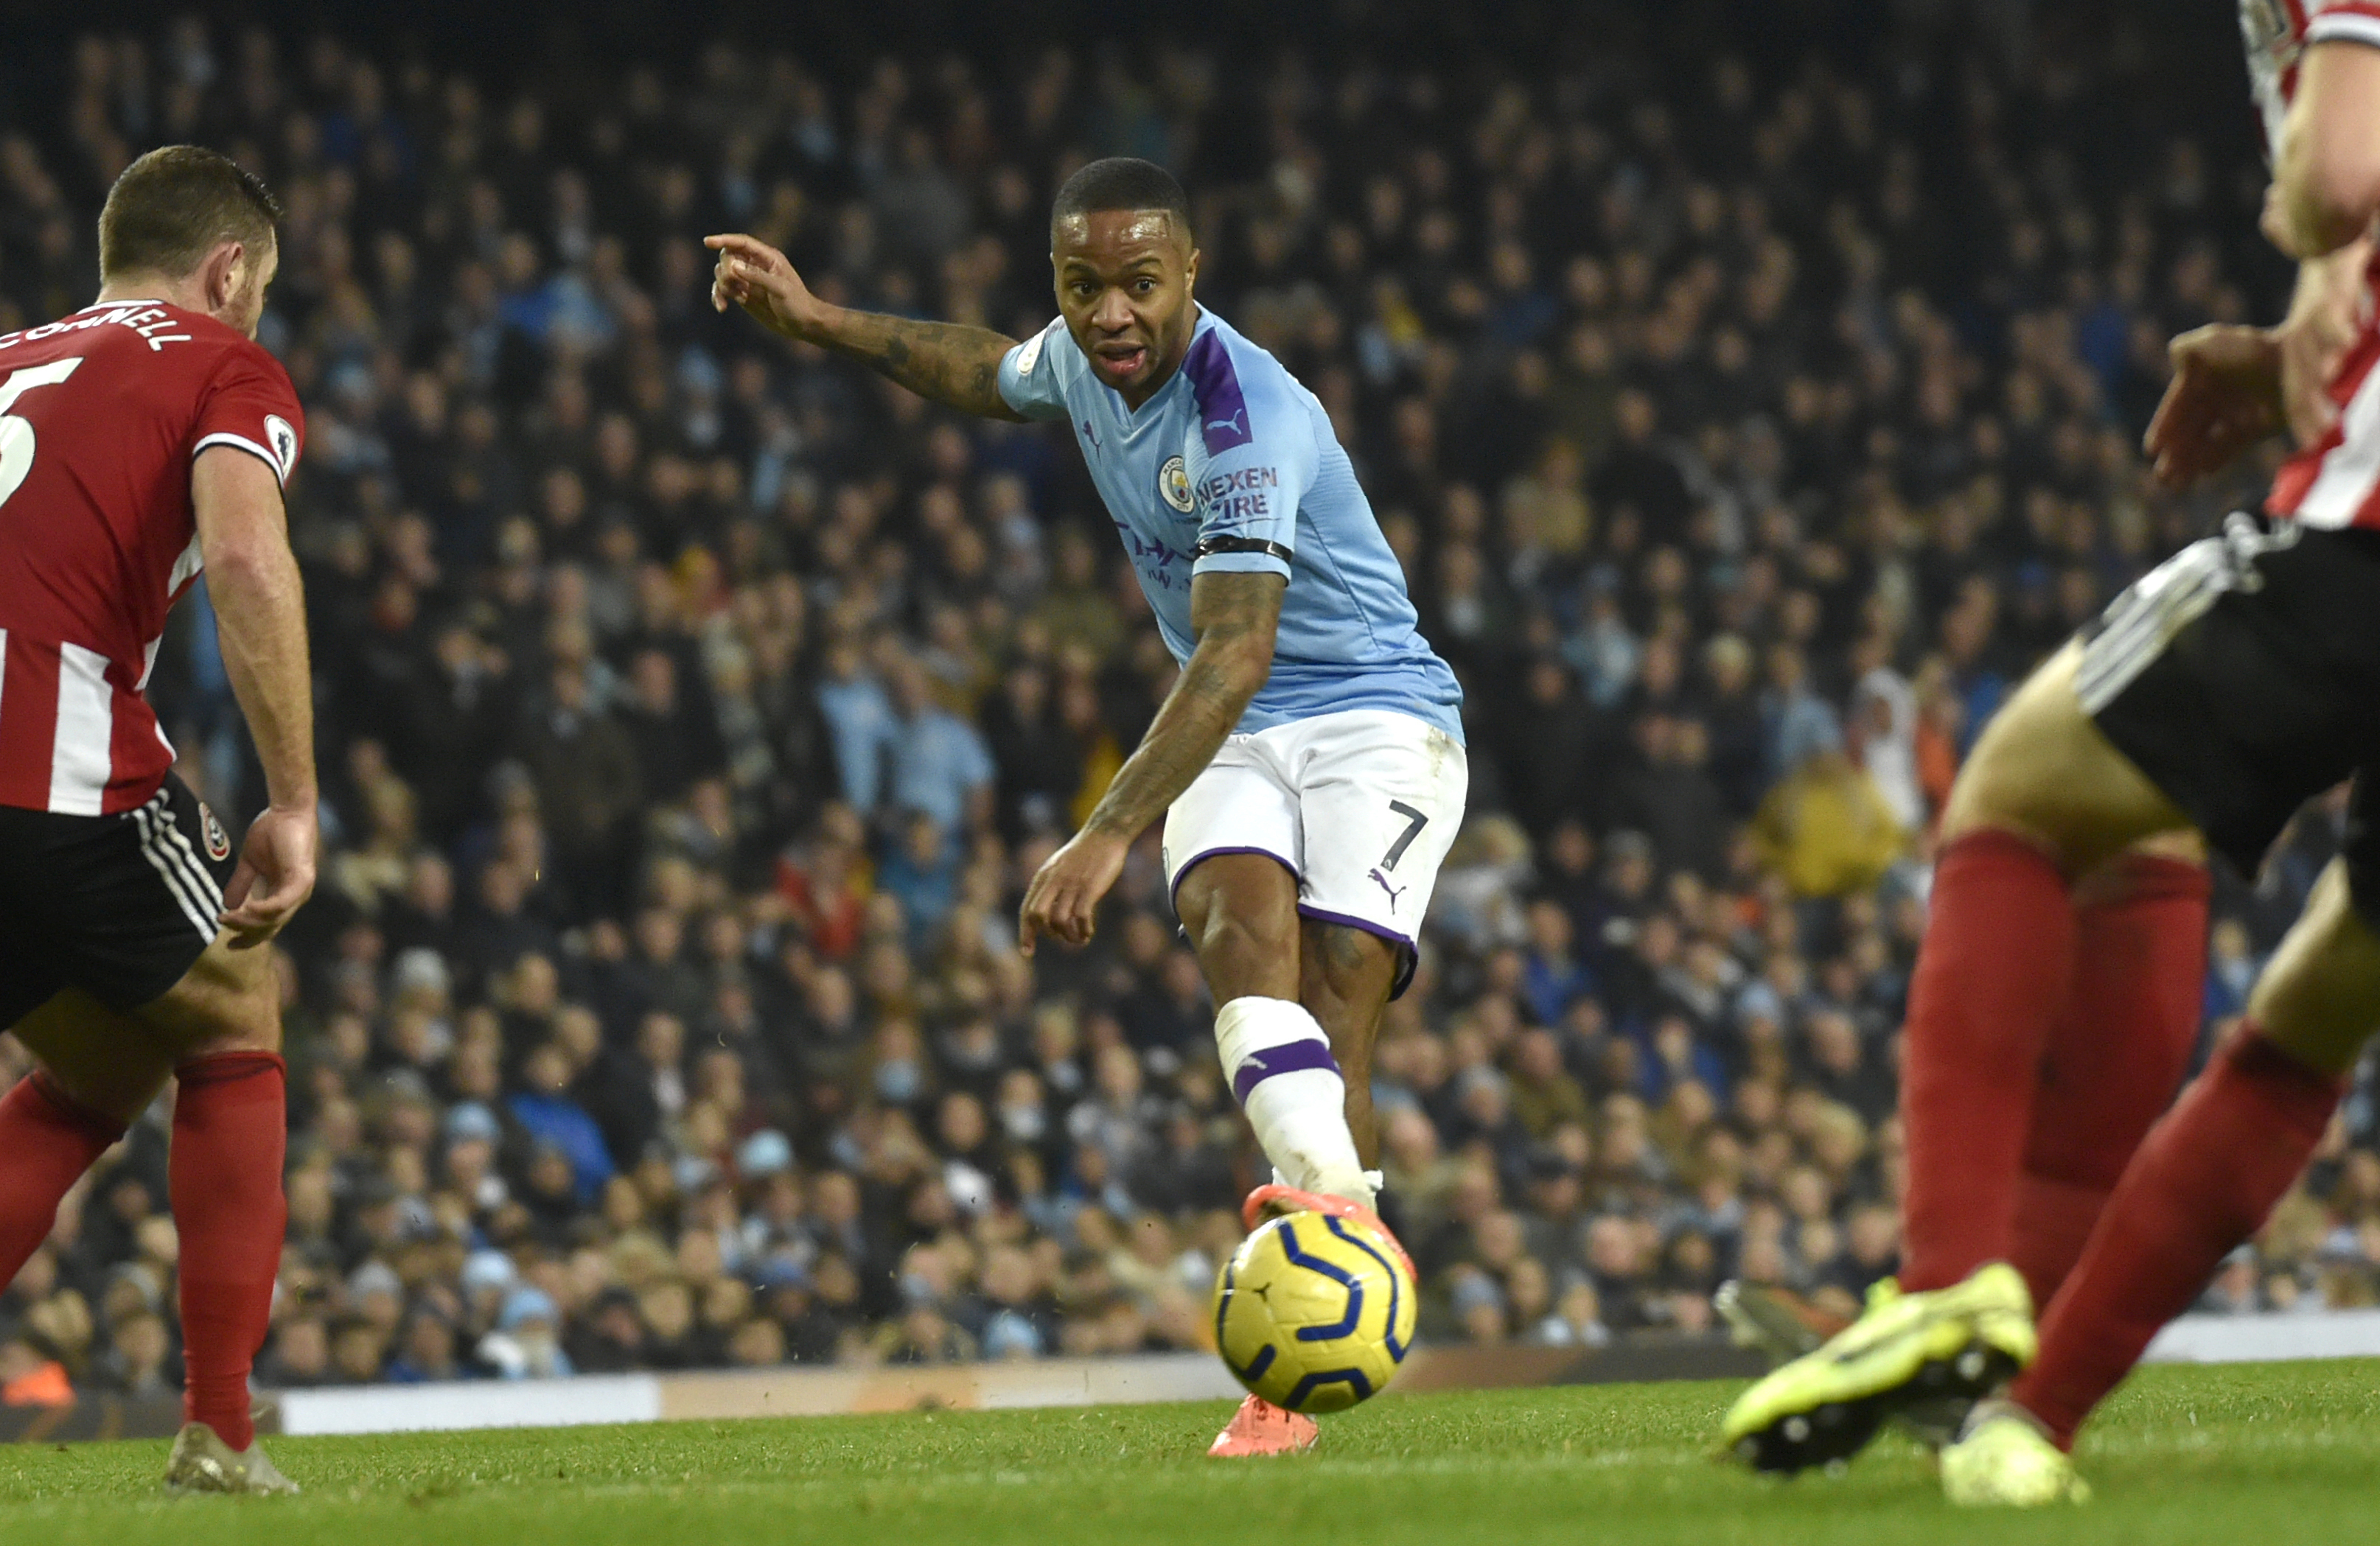 Fan handed 5-year soccer ban for racially abusing Sterling